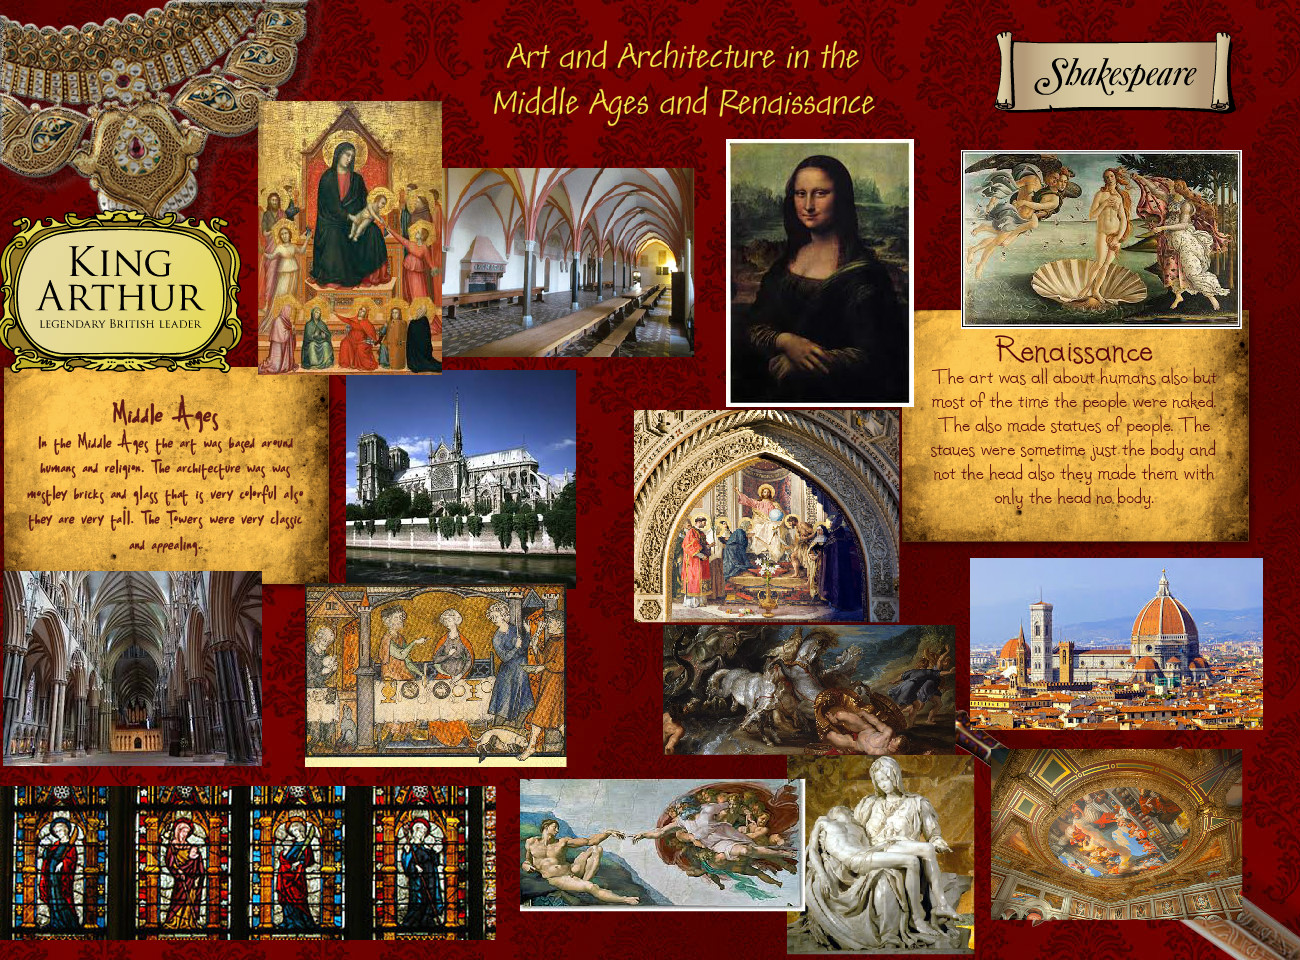 Art and Architecture in the Middle Ages and Renaissance